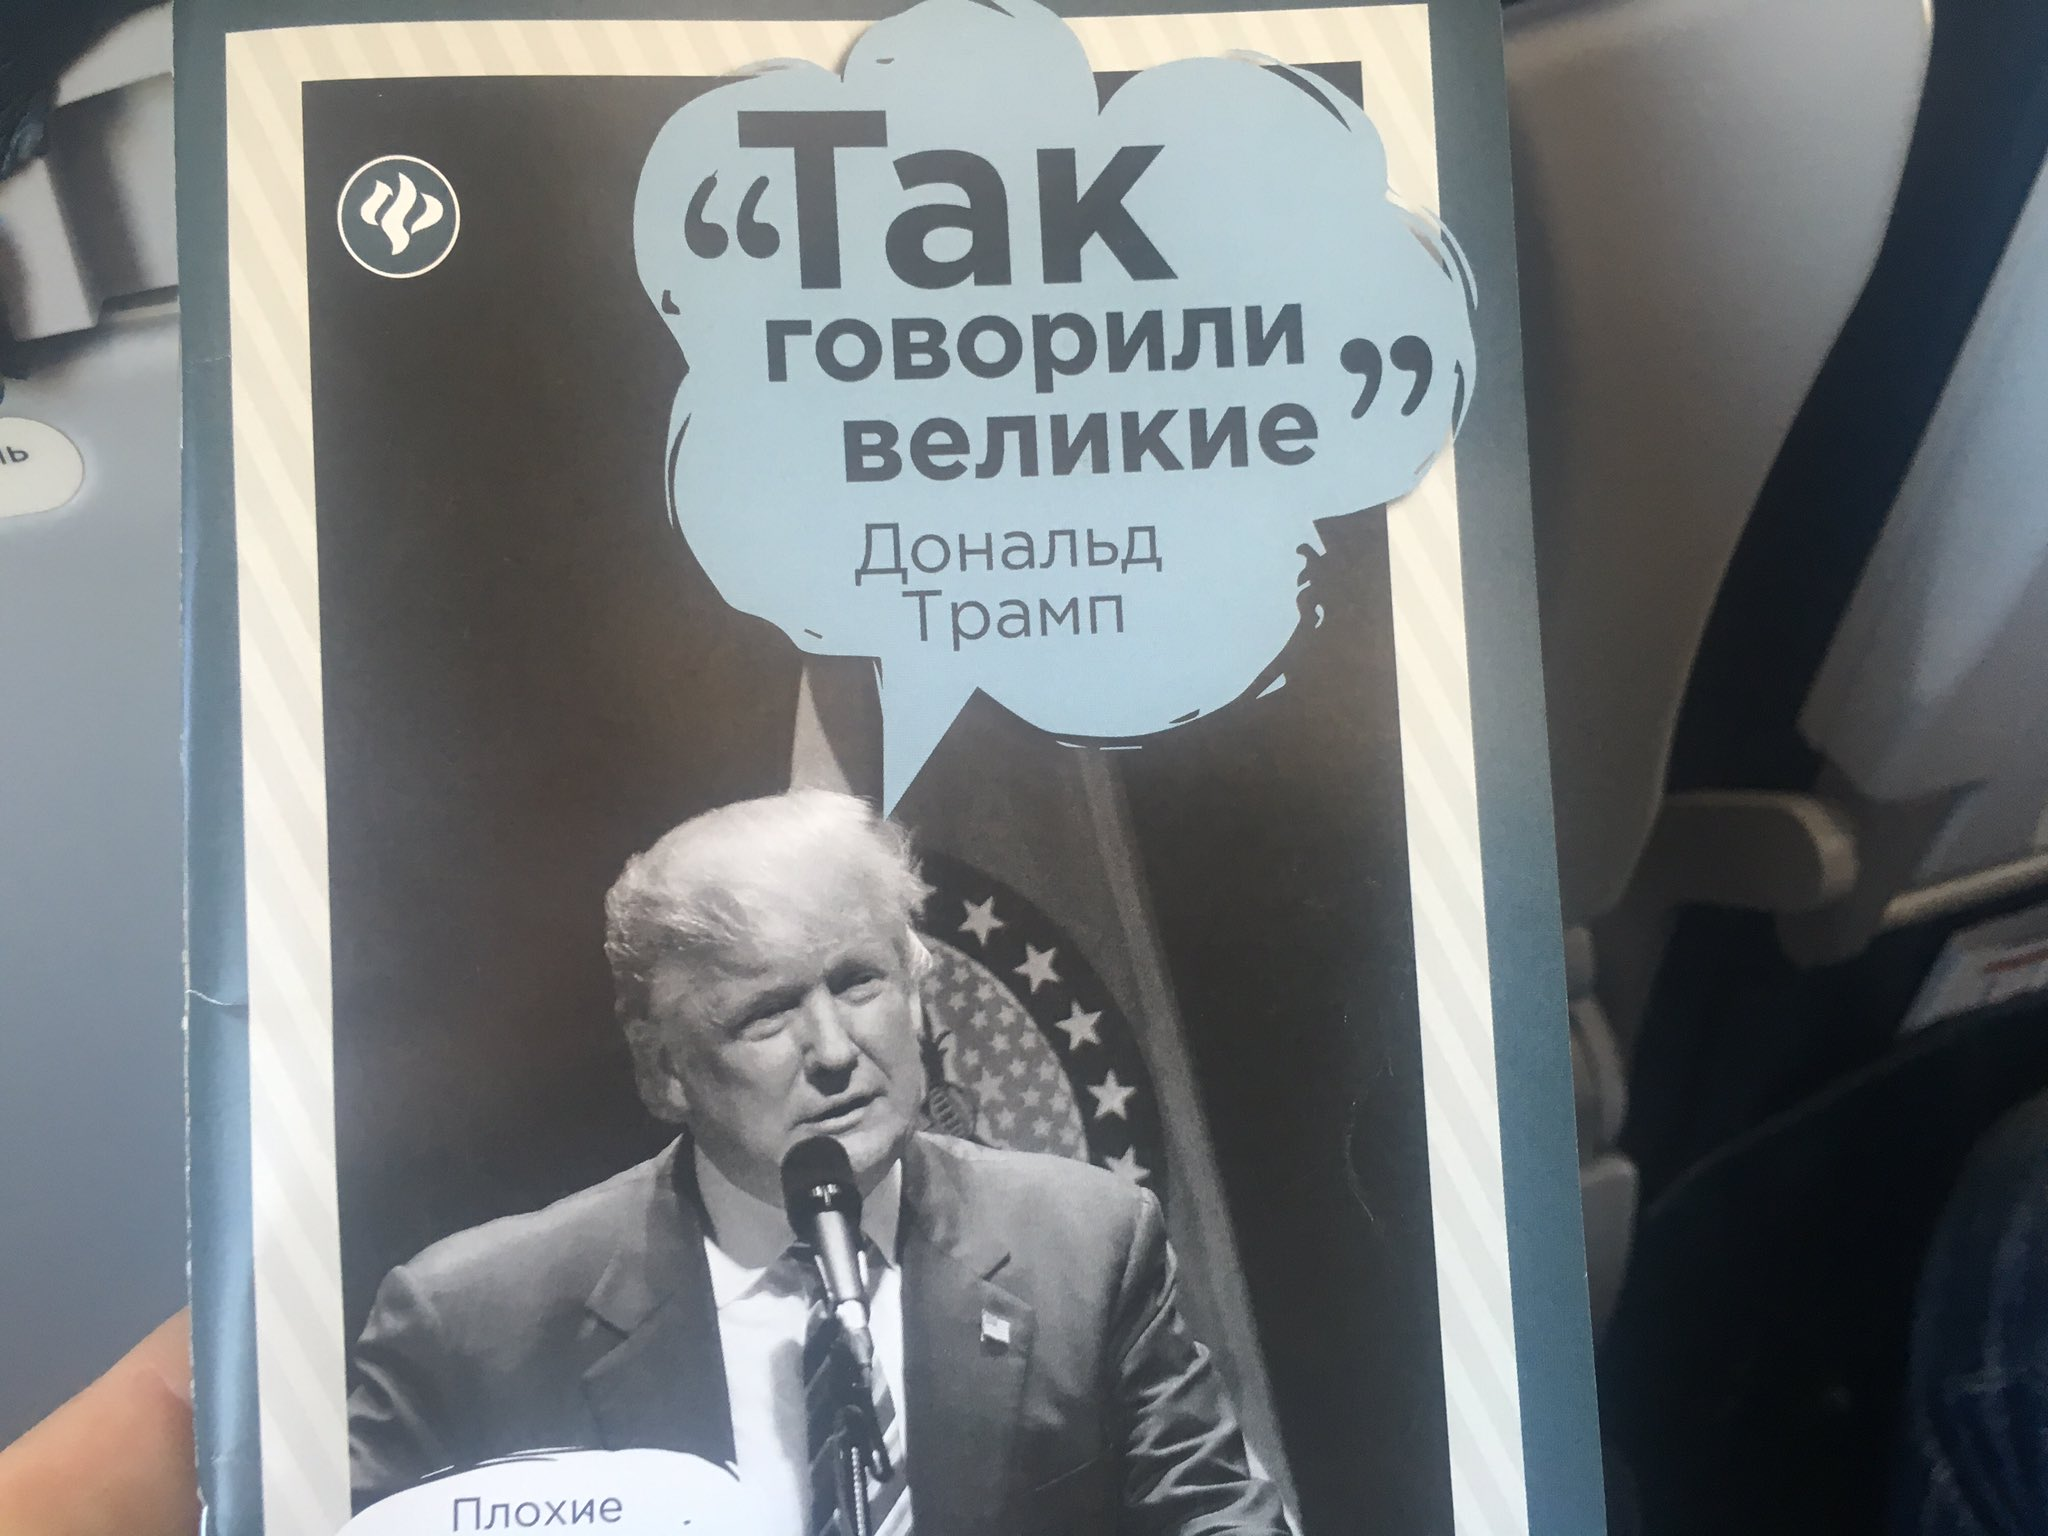 On sale at Moscow airport: a book of Donald Trump quotations, from the series 'What Great People Said'. https://t.co/BdAOBiQj1s